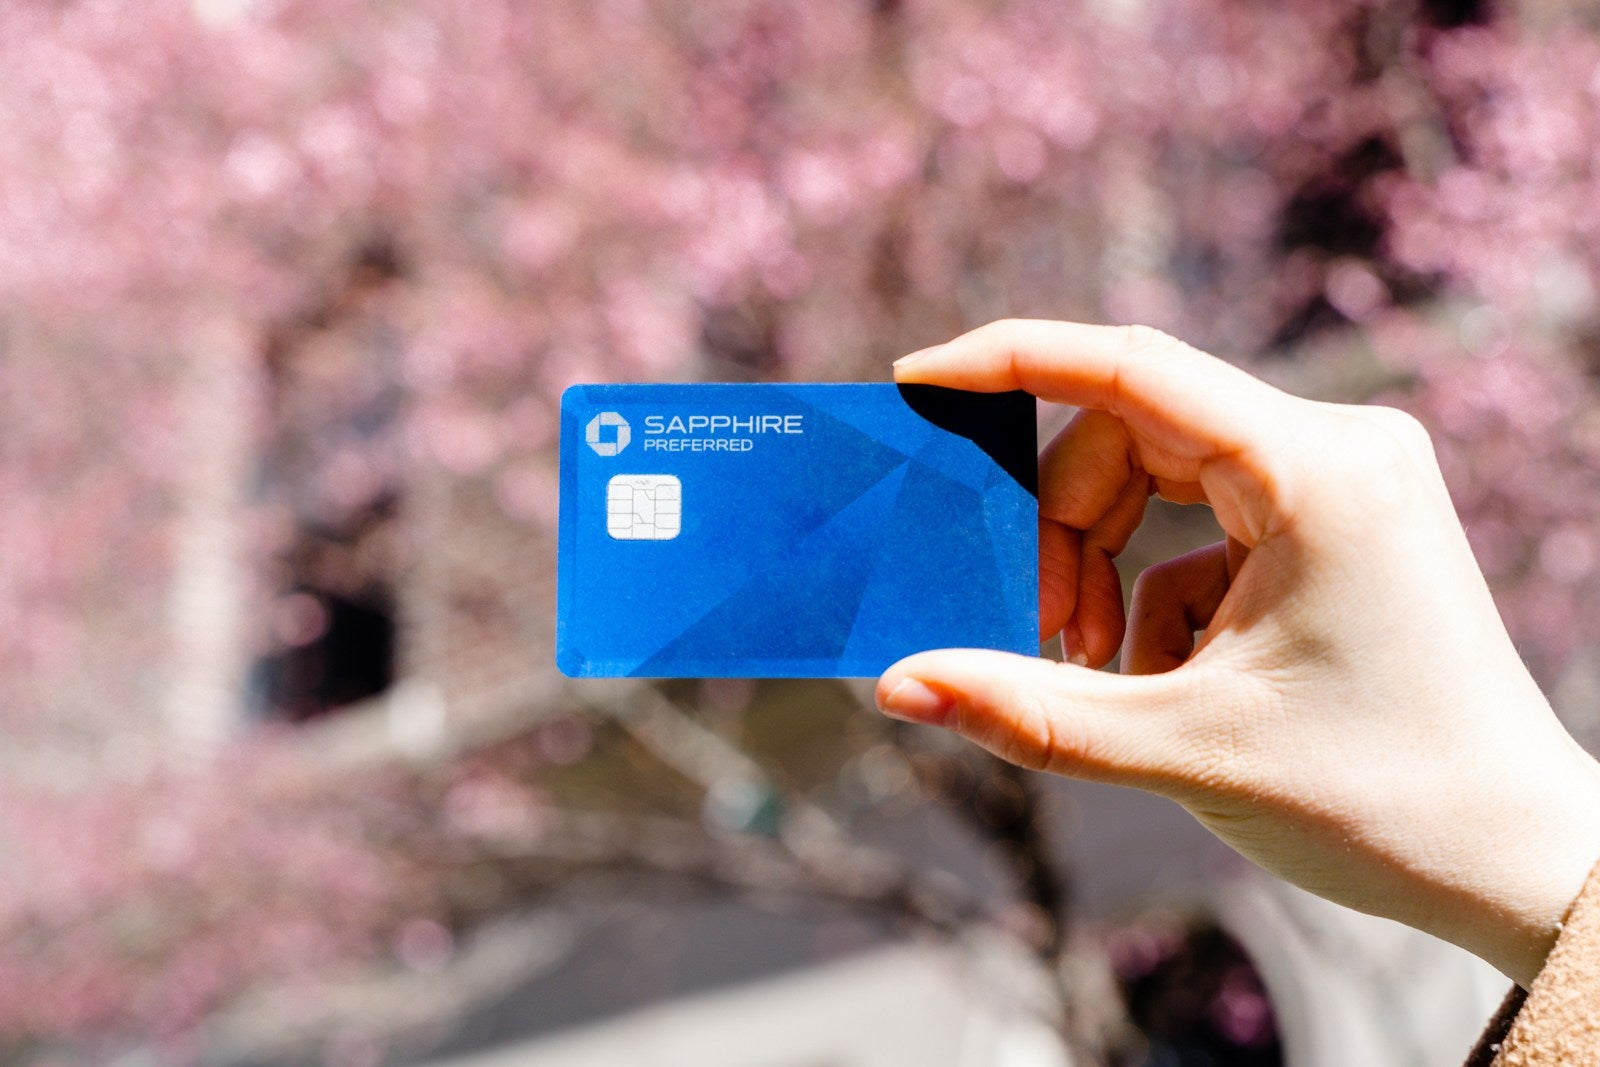 Chase Sapphire Preferred Card (Photo by Wyatt Smith/The Points Guy)